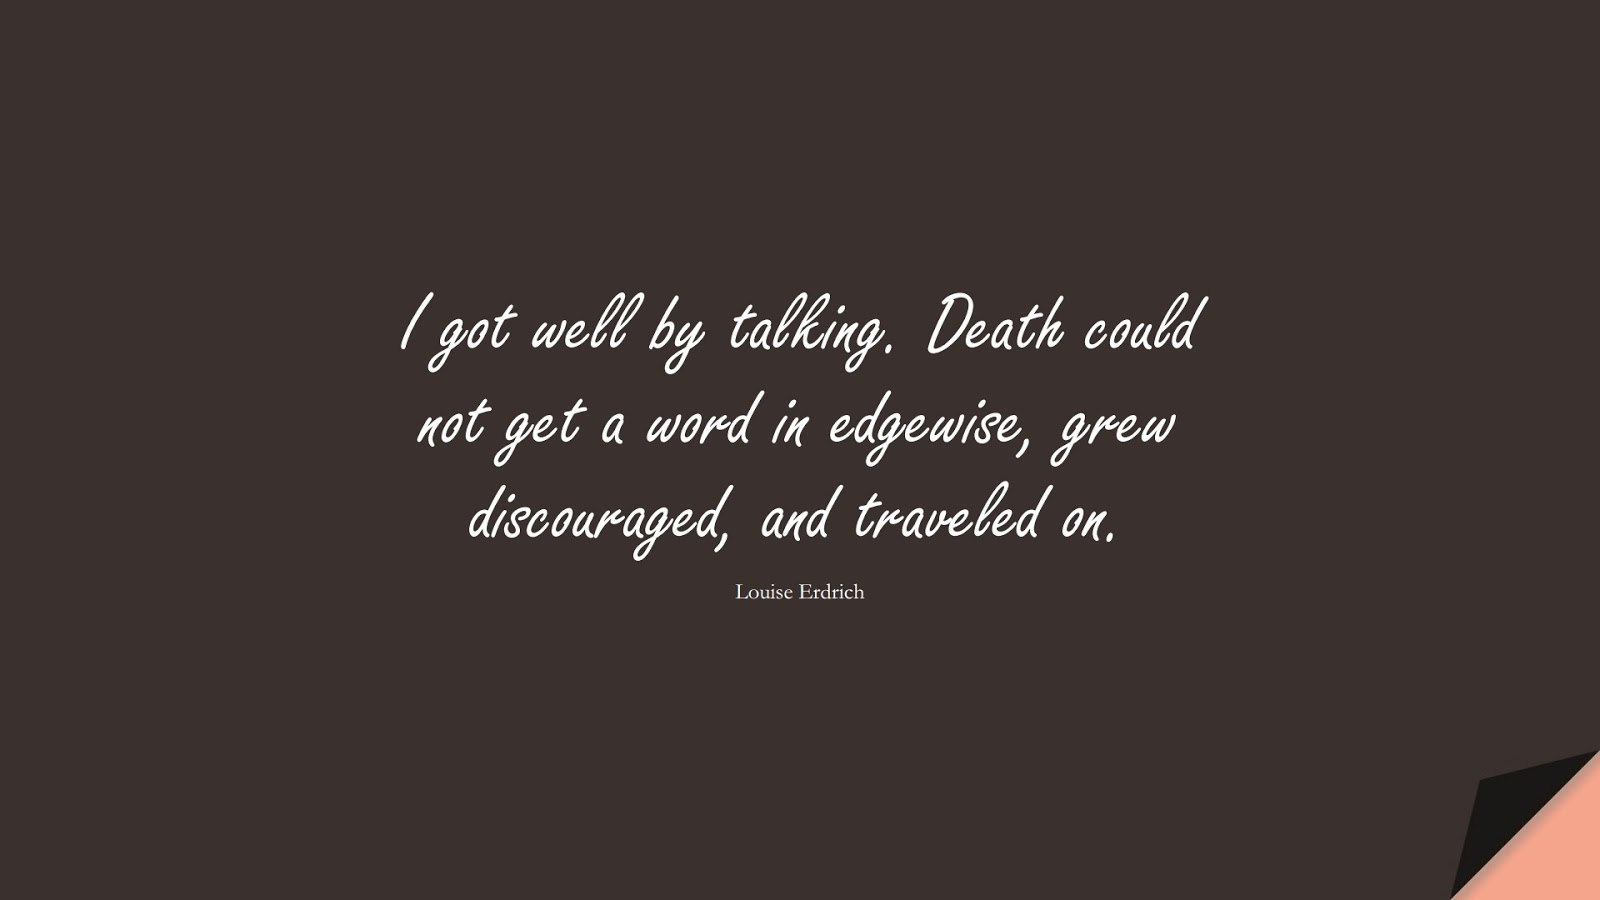 I got well by talking. Death could not get a word in edgewise, grew discouraged, and traveled on. (Louise Erdrich);  #HealthQuotes